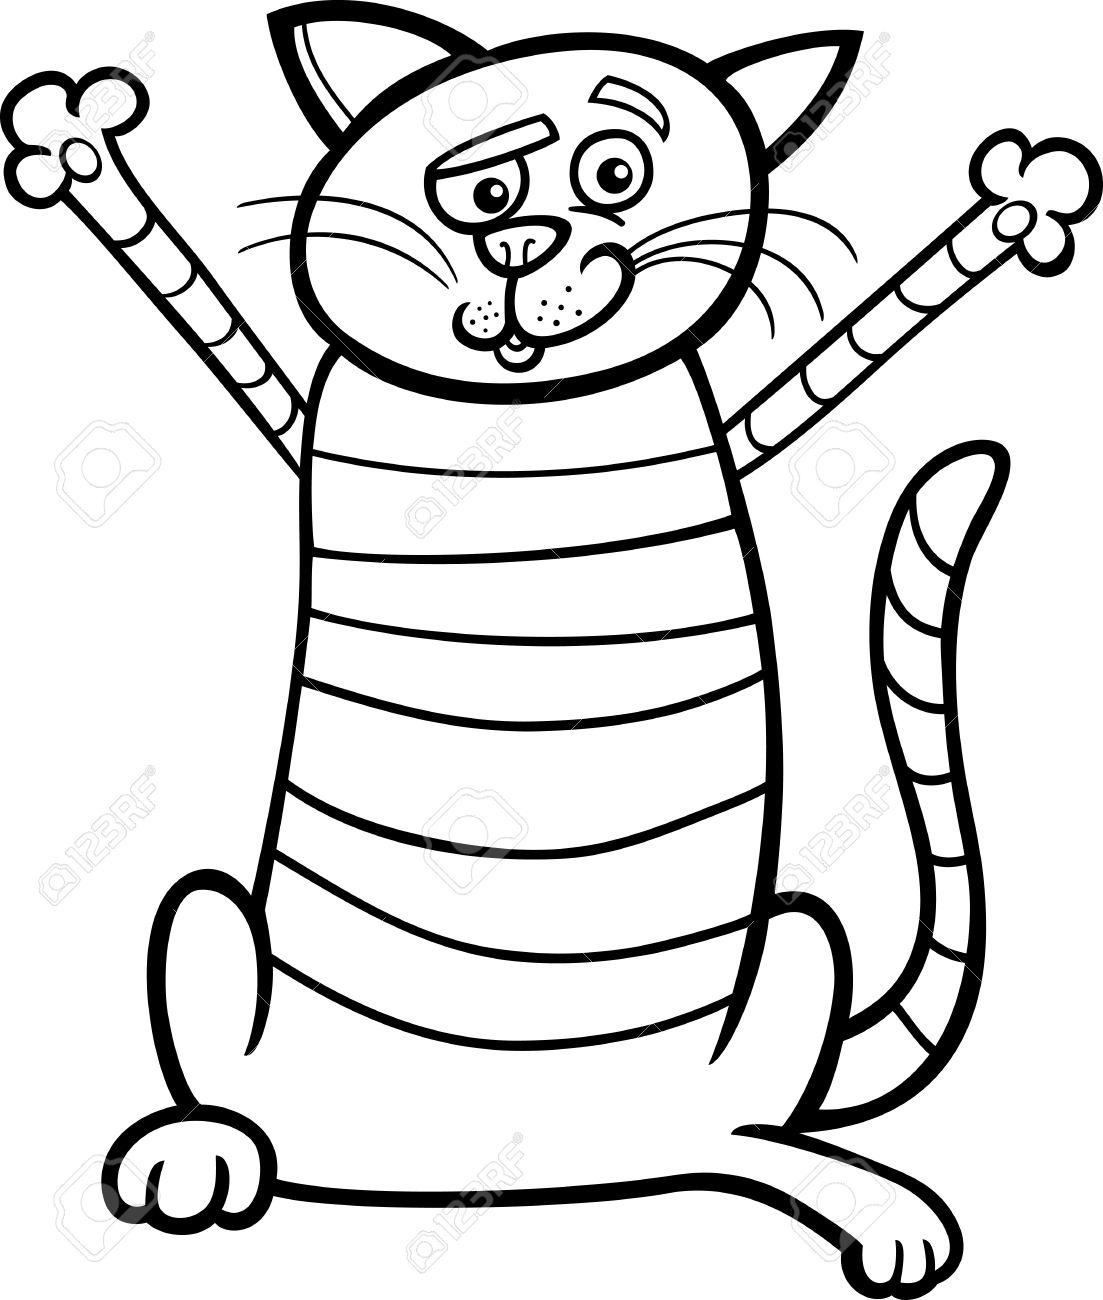 cat drawing black and white at getdrawings com free for personal rh getdrawings com cat black and white clipart png black and white halloween cat clipart